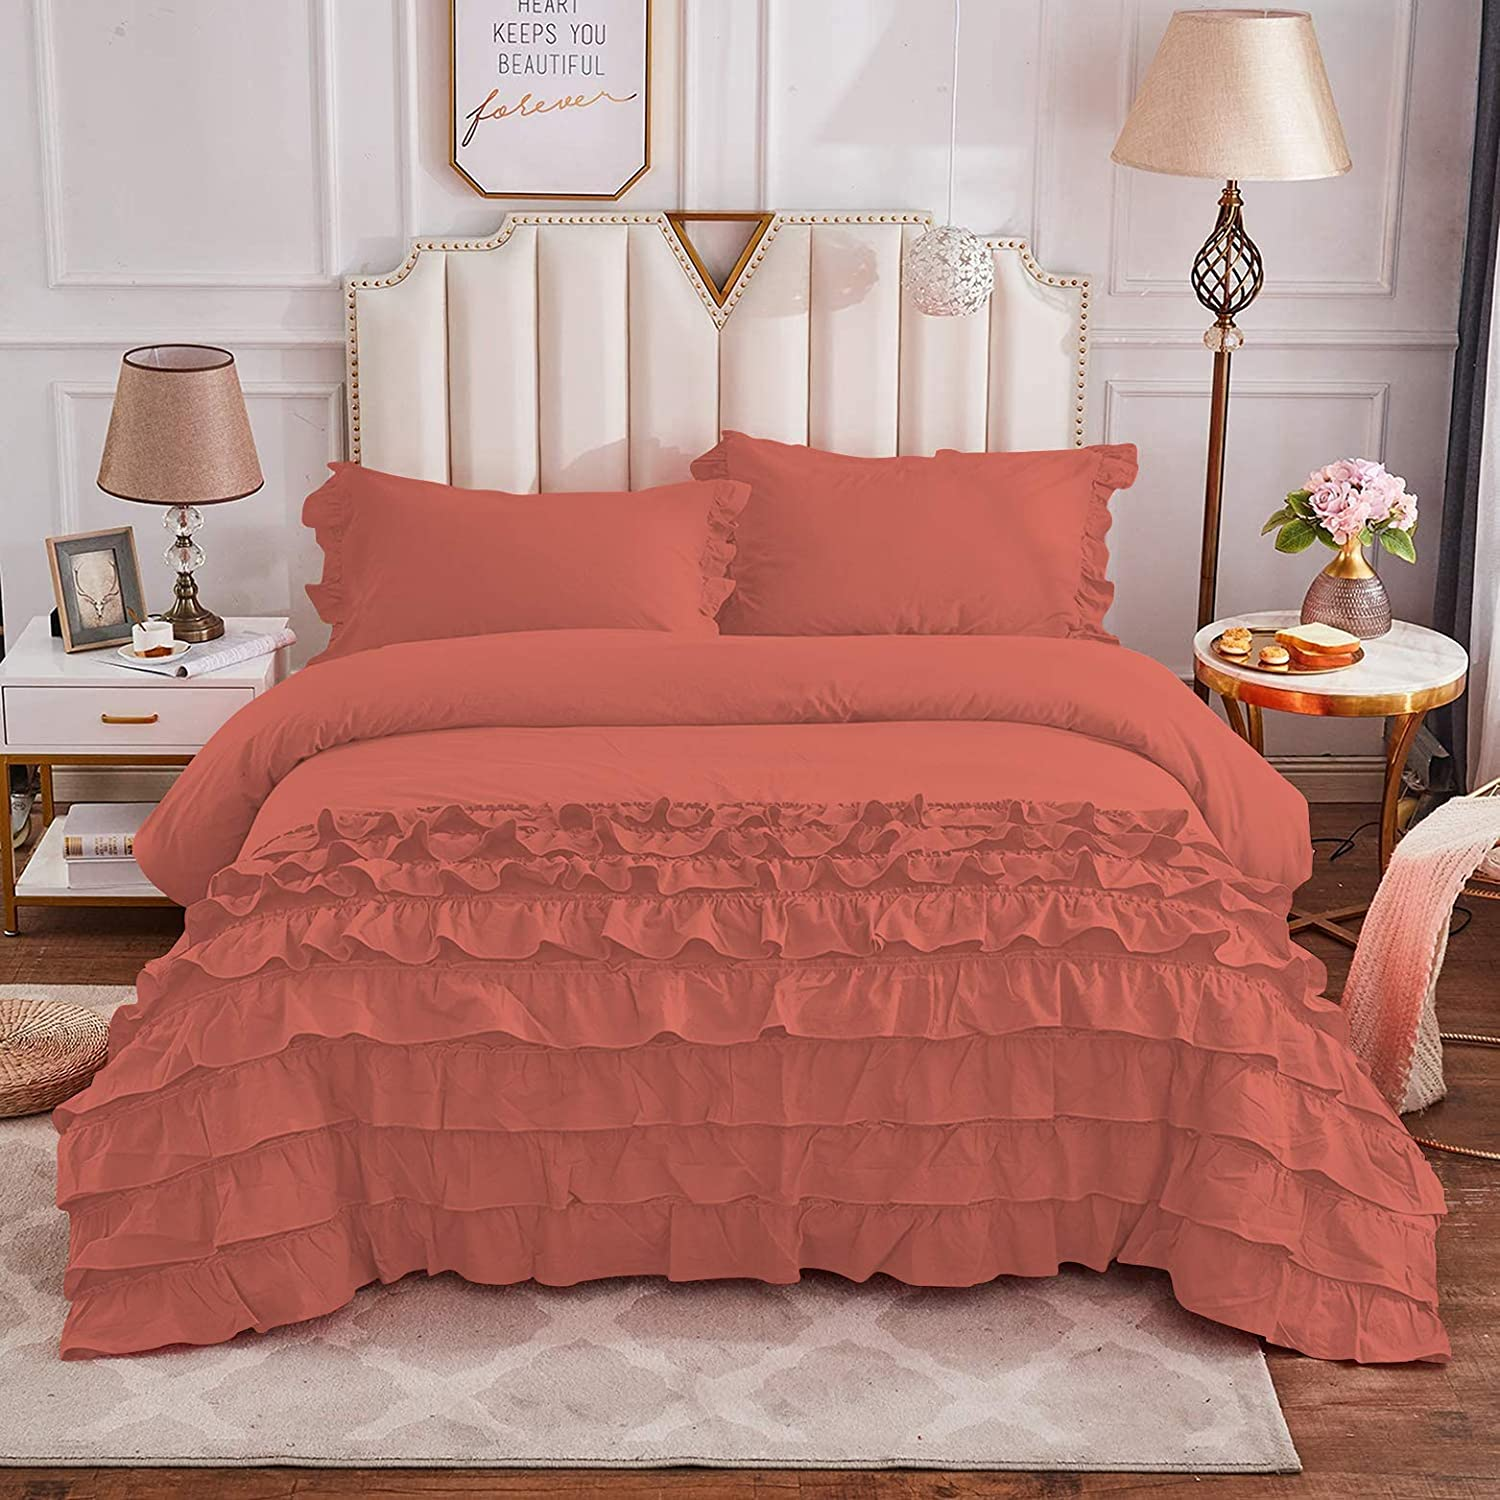 Luxury Linens Full Queen Size Girls Ruffled Cut Max Today's only 83% OFF Vintage Bedding